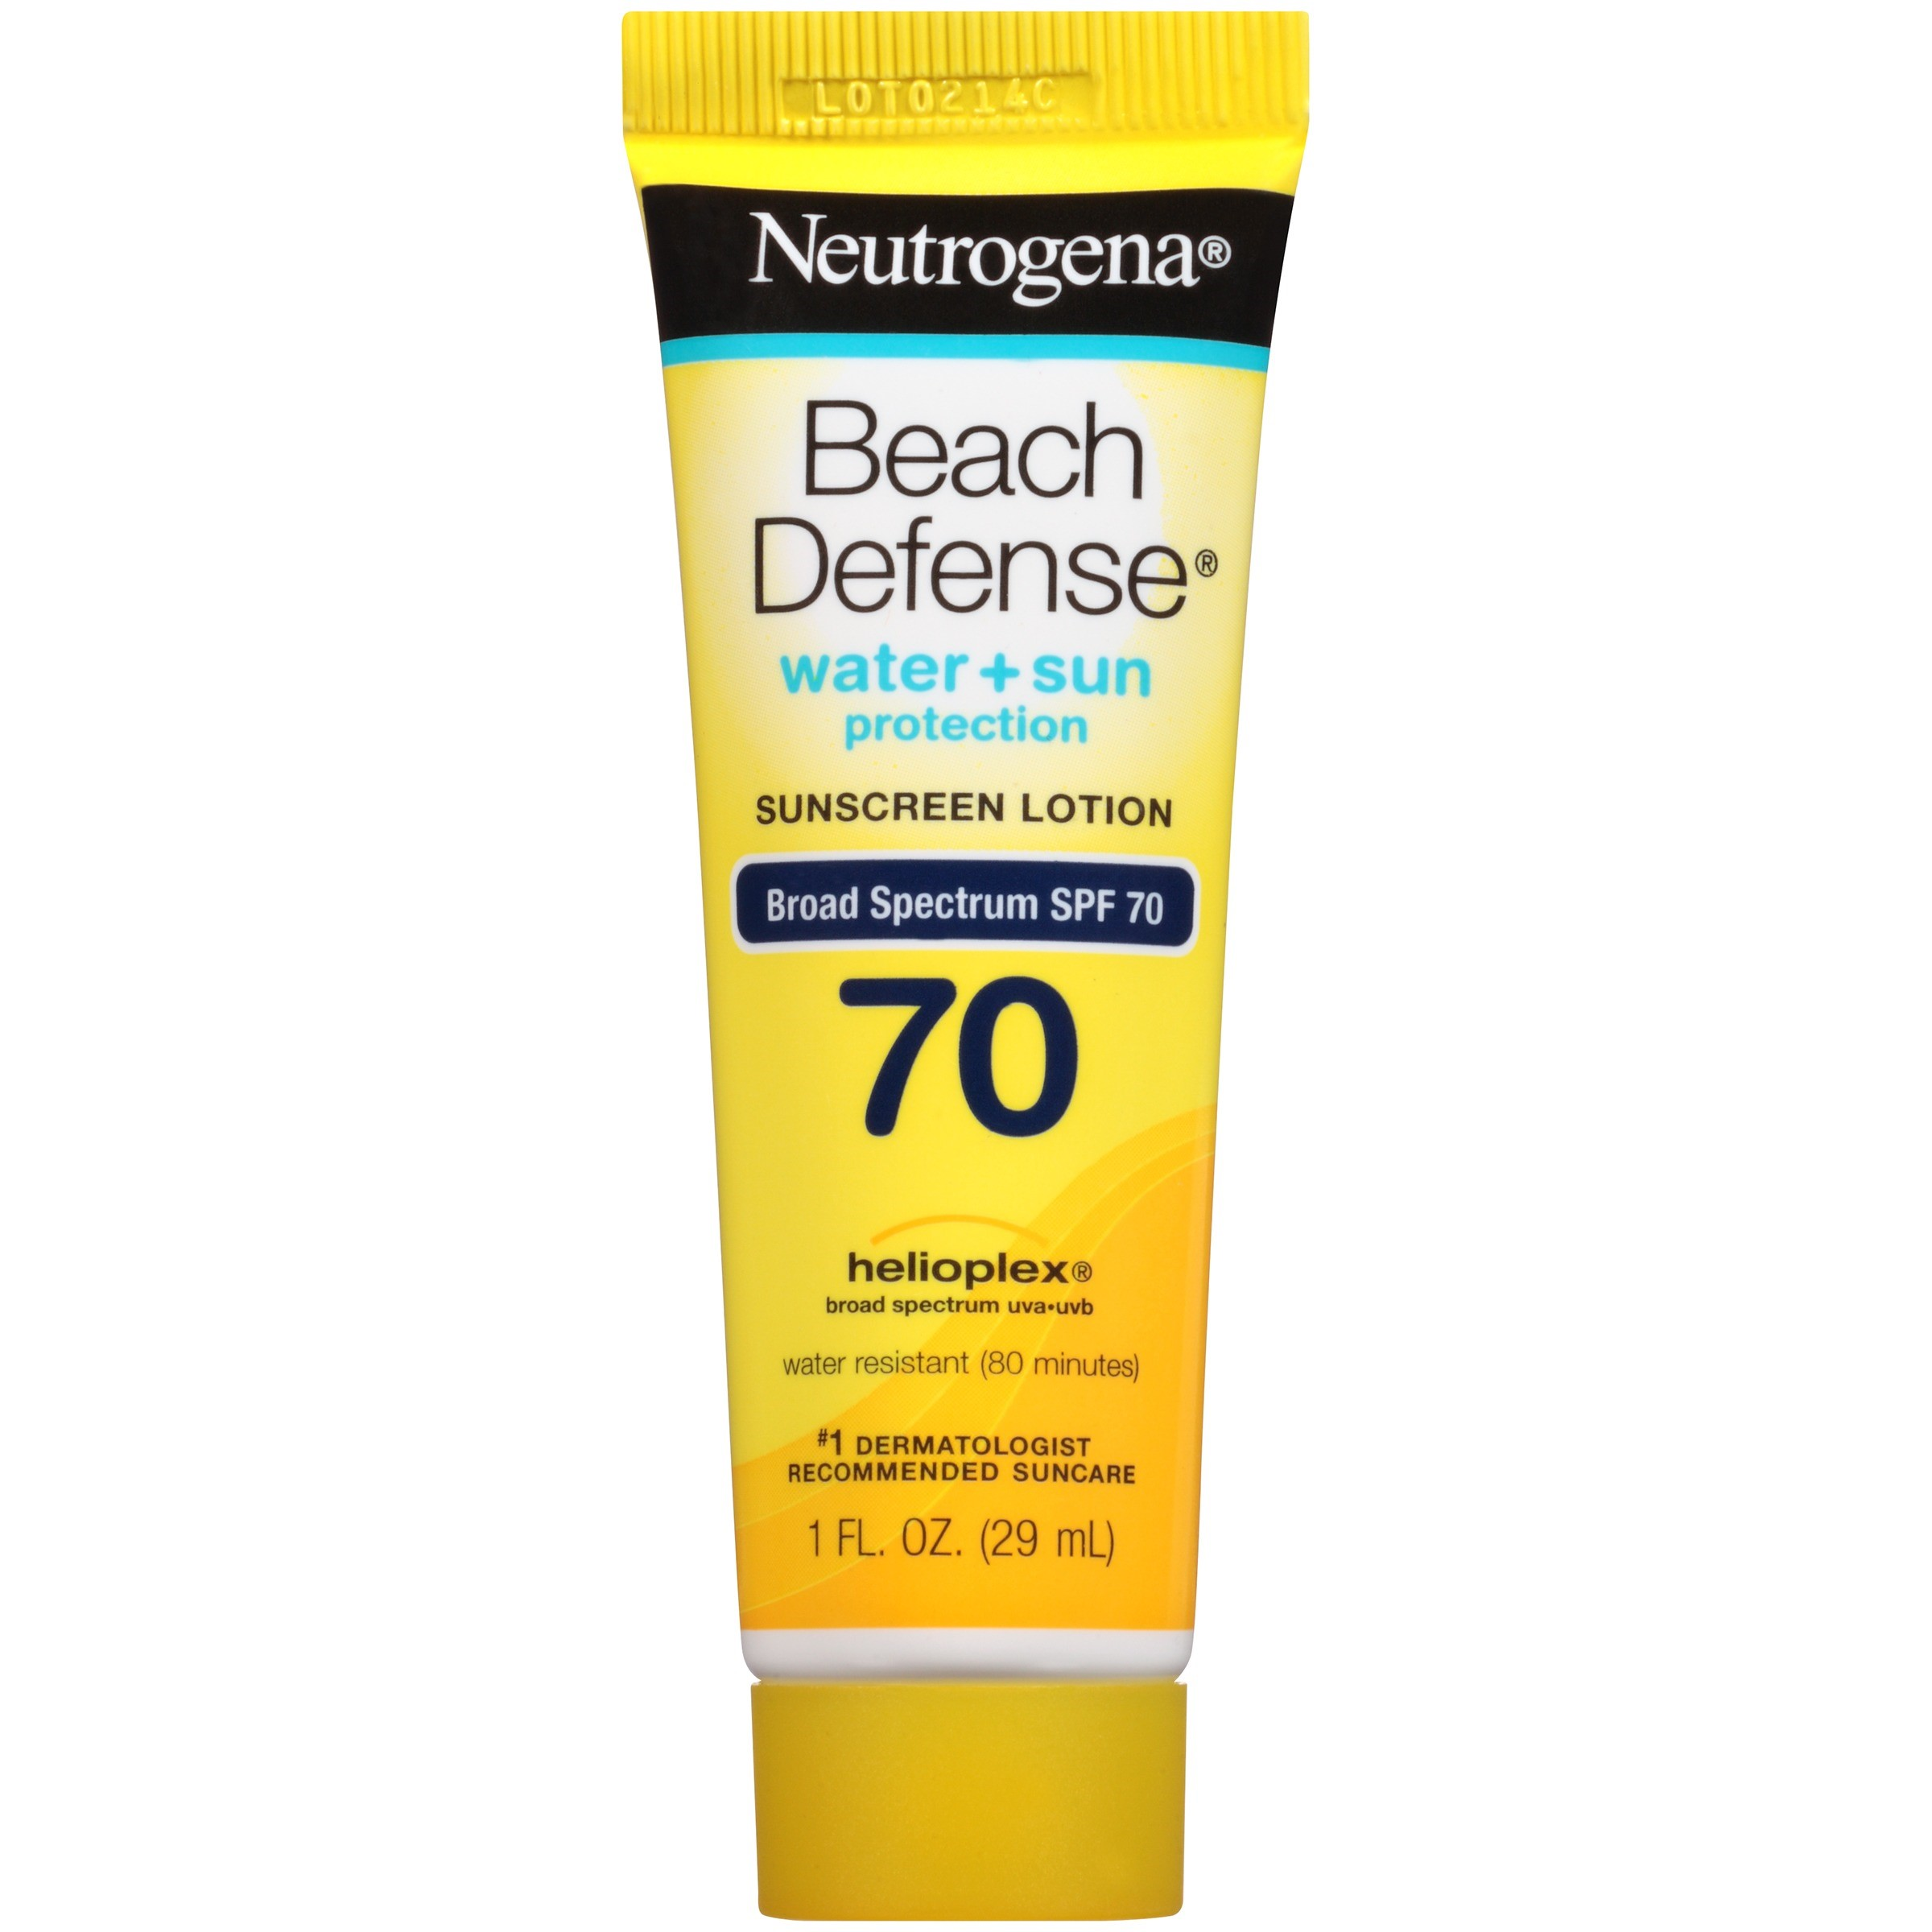 Neutrogena Beach Defense Sunscreen Lotion Broad Spectrum SPF 70, 1 Fl. Oz